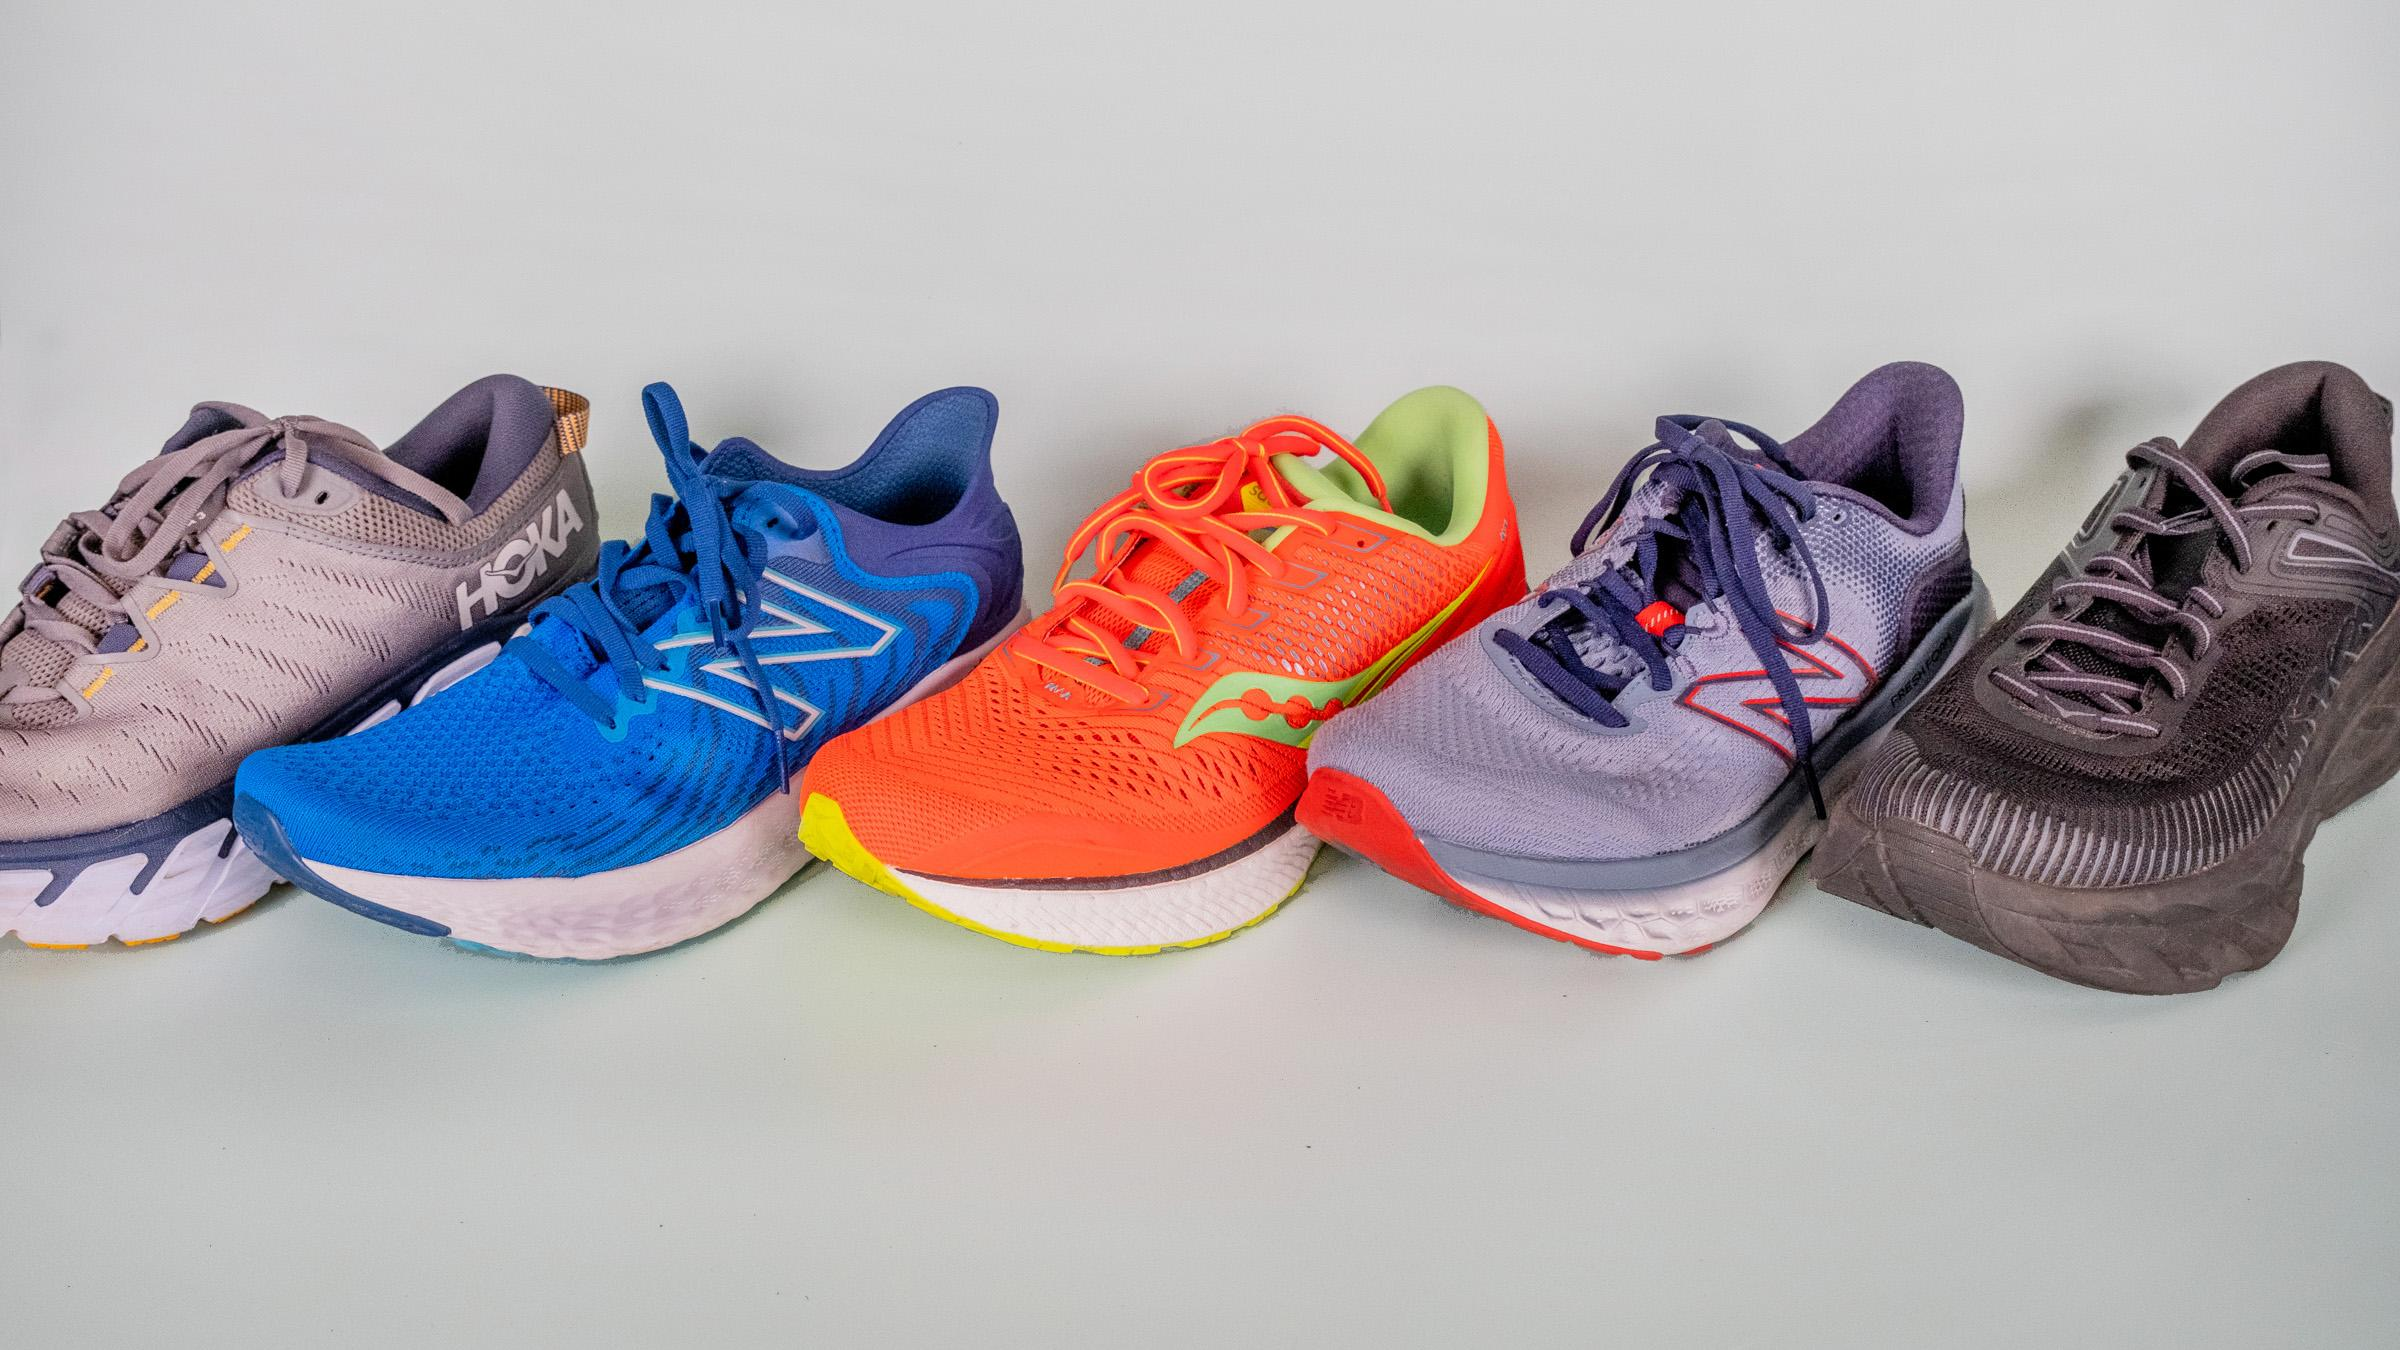 10 Best Treadmill Running Shoes in 2021